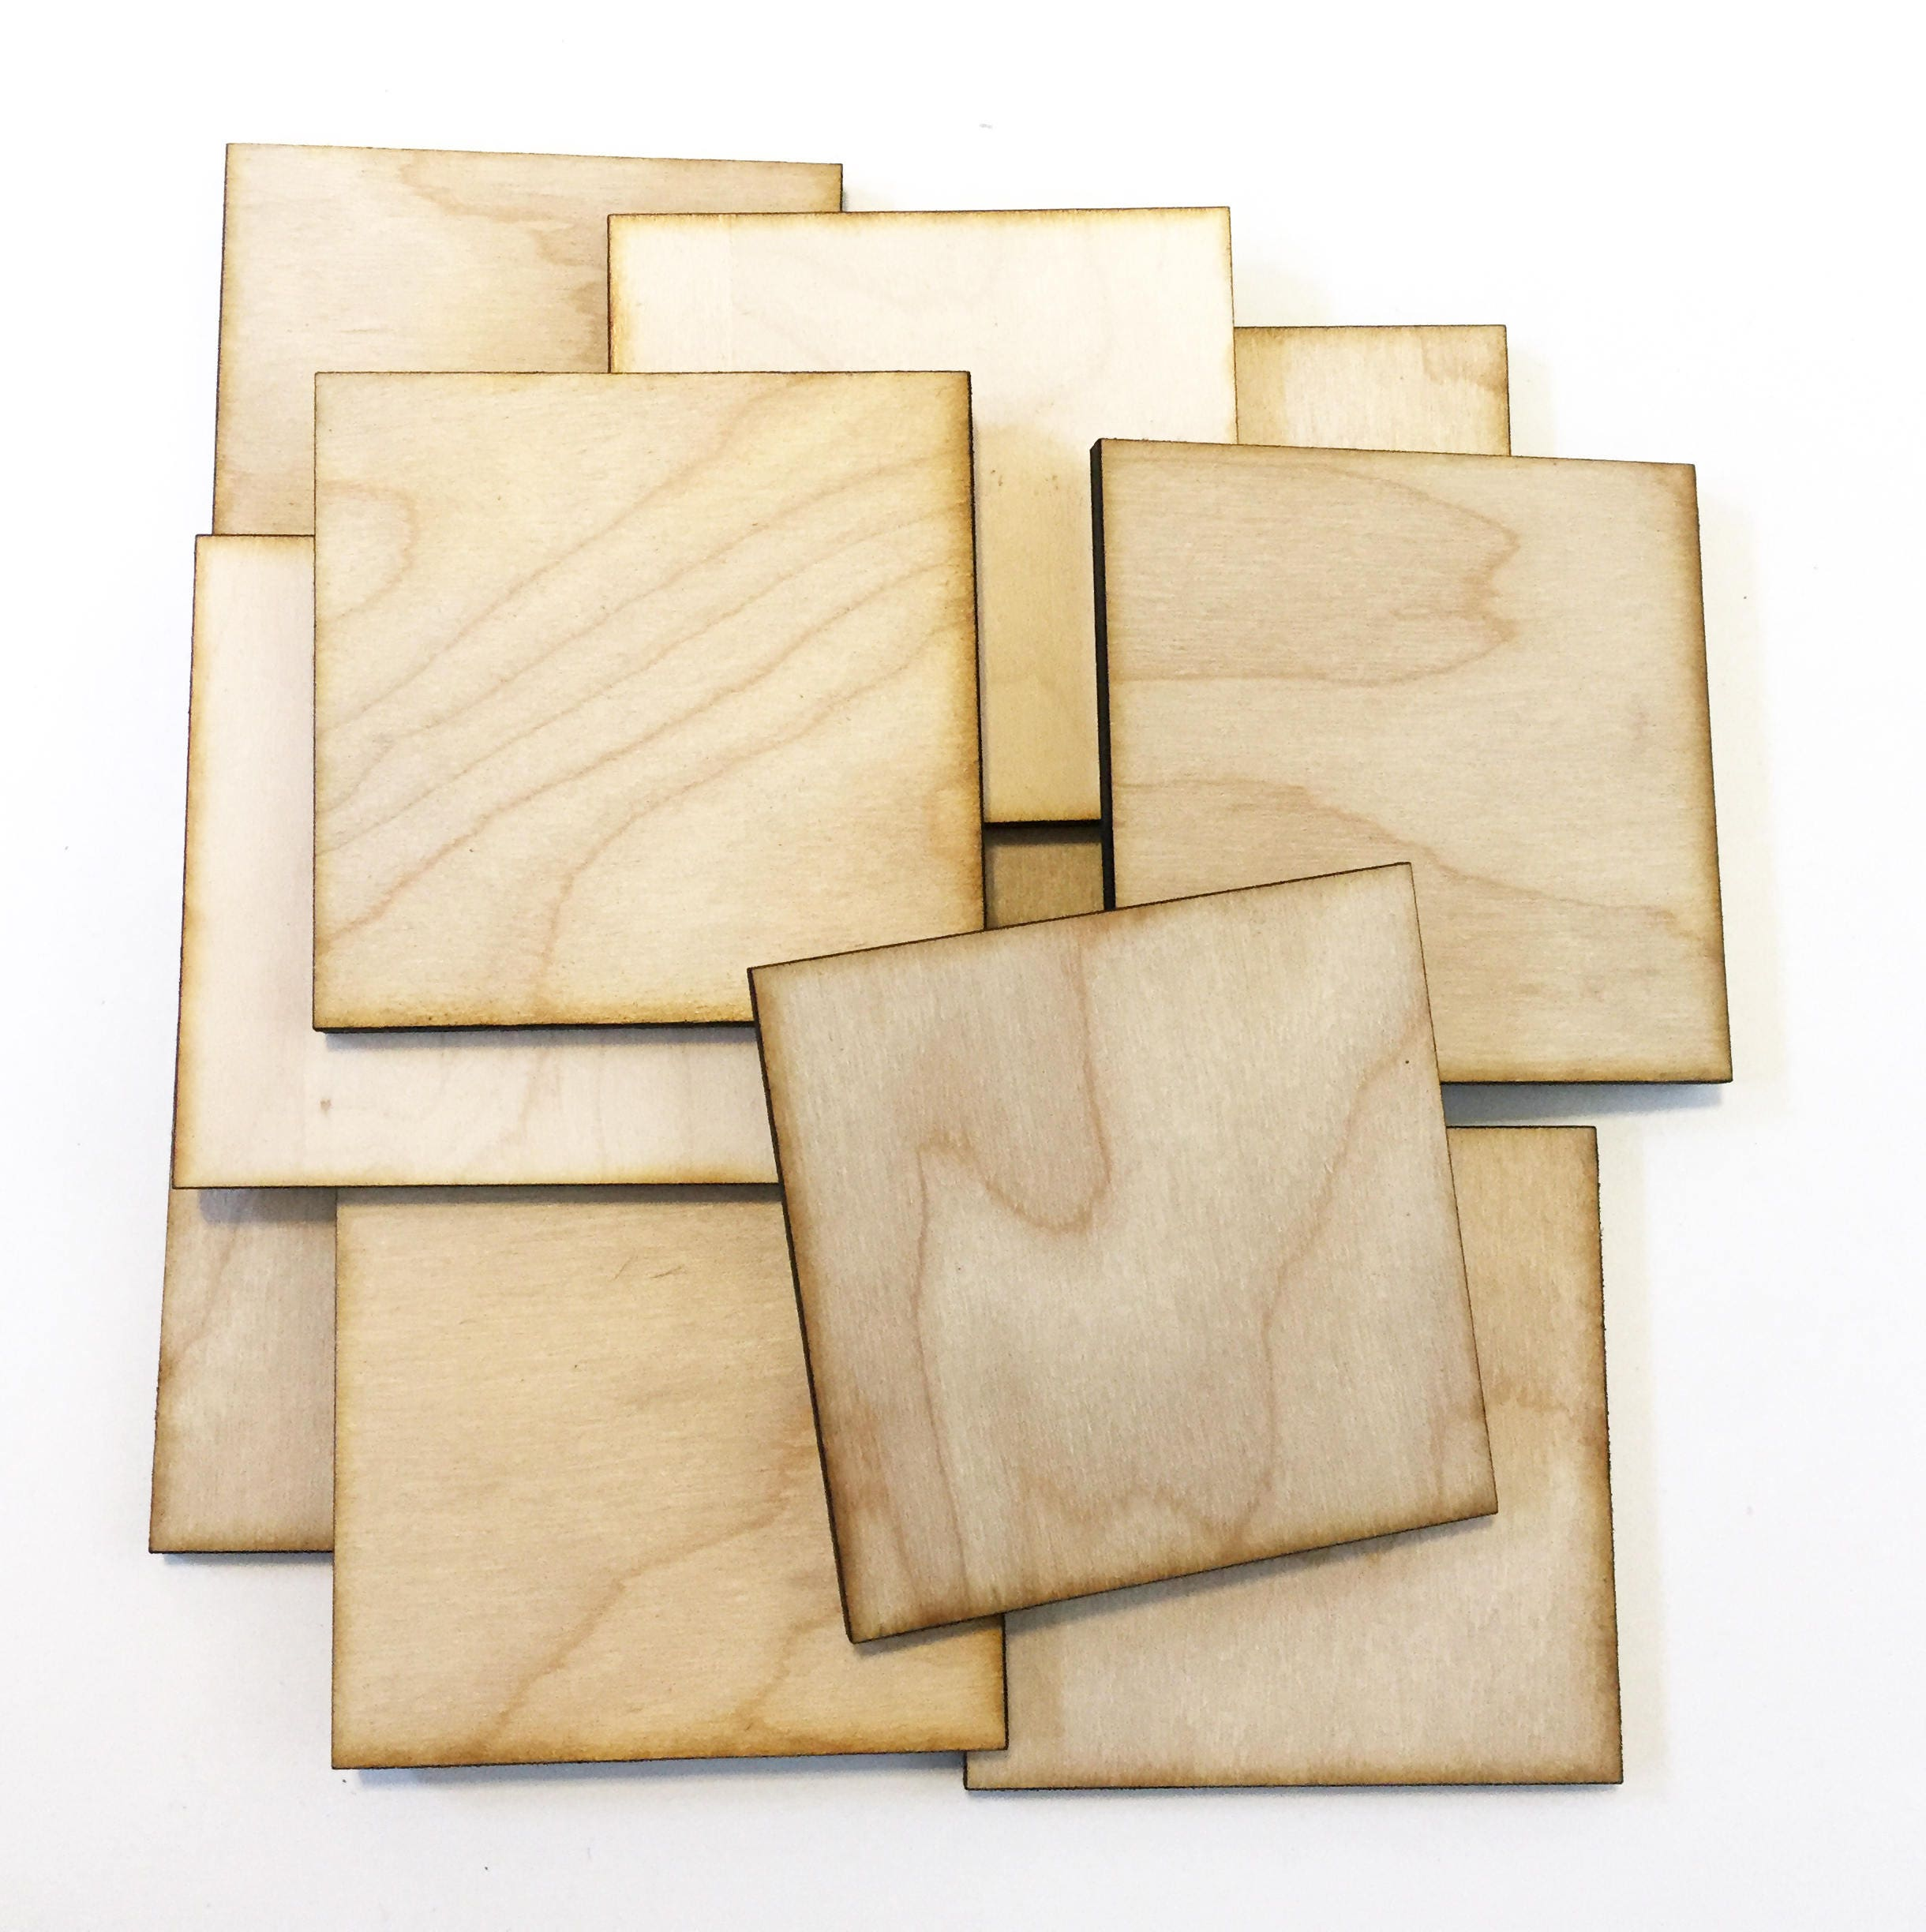 Unfinished wood craft products - Sold By Lightninglasercuts